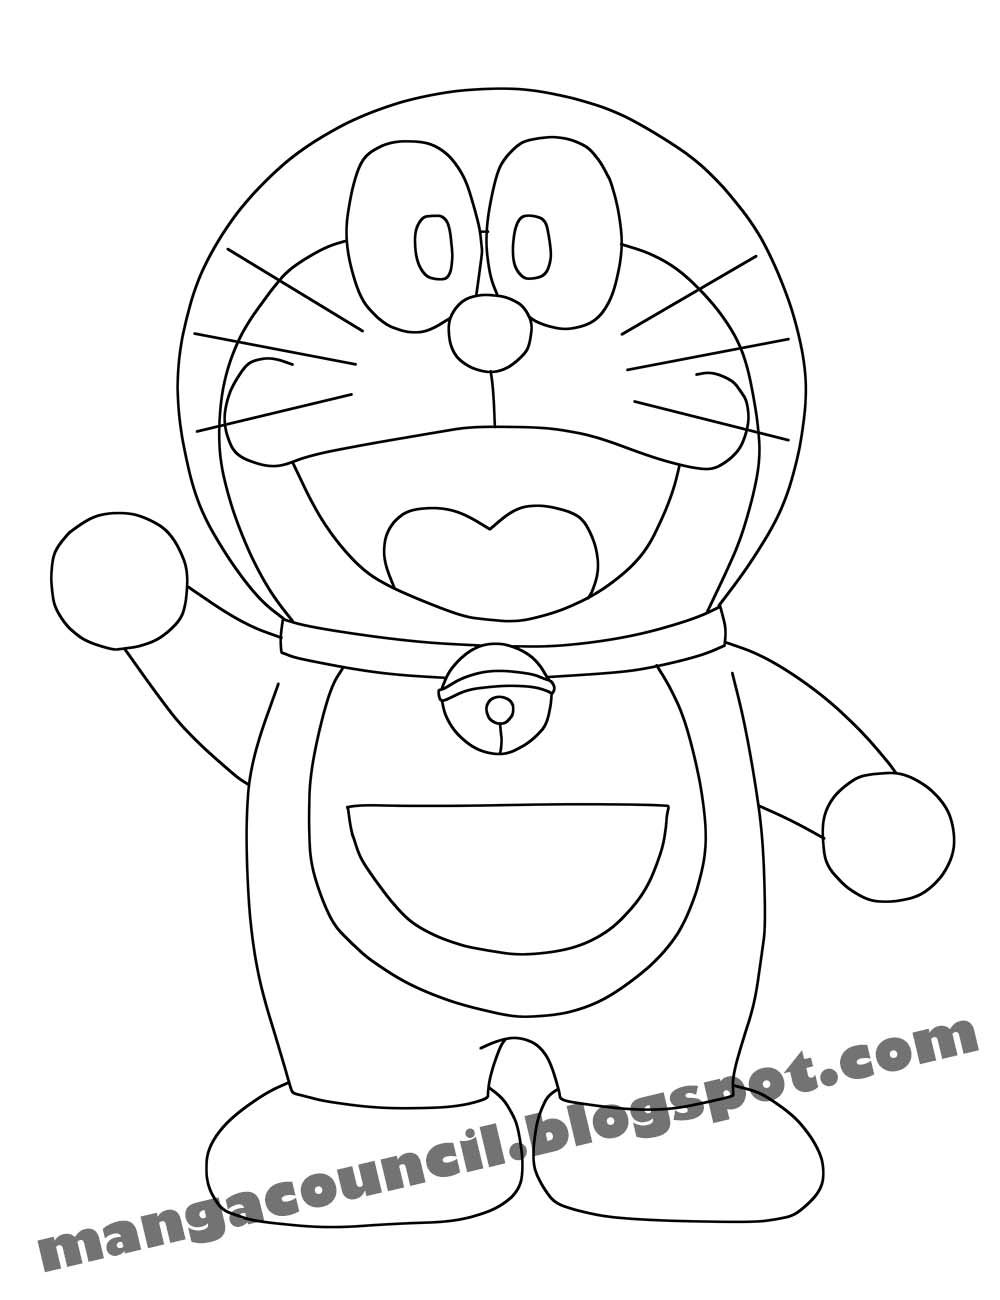 cara menggambar anime doraemon manga council 16